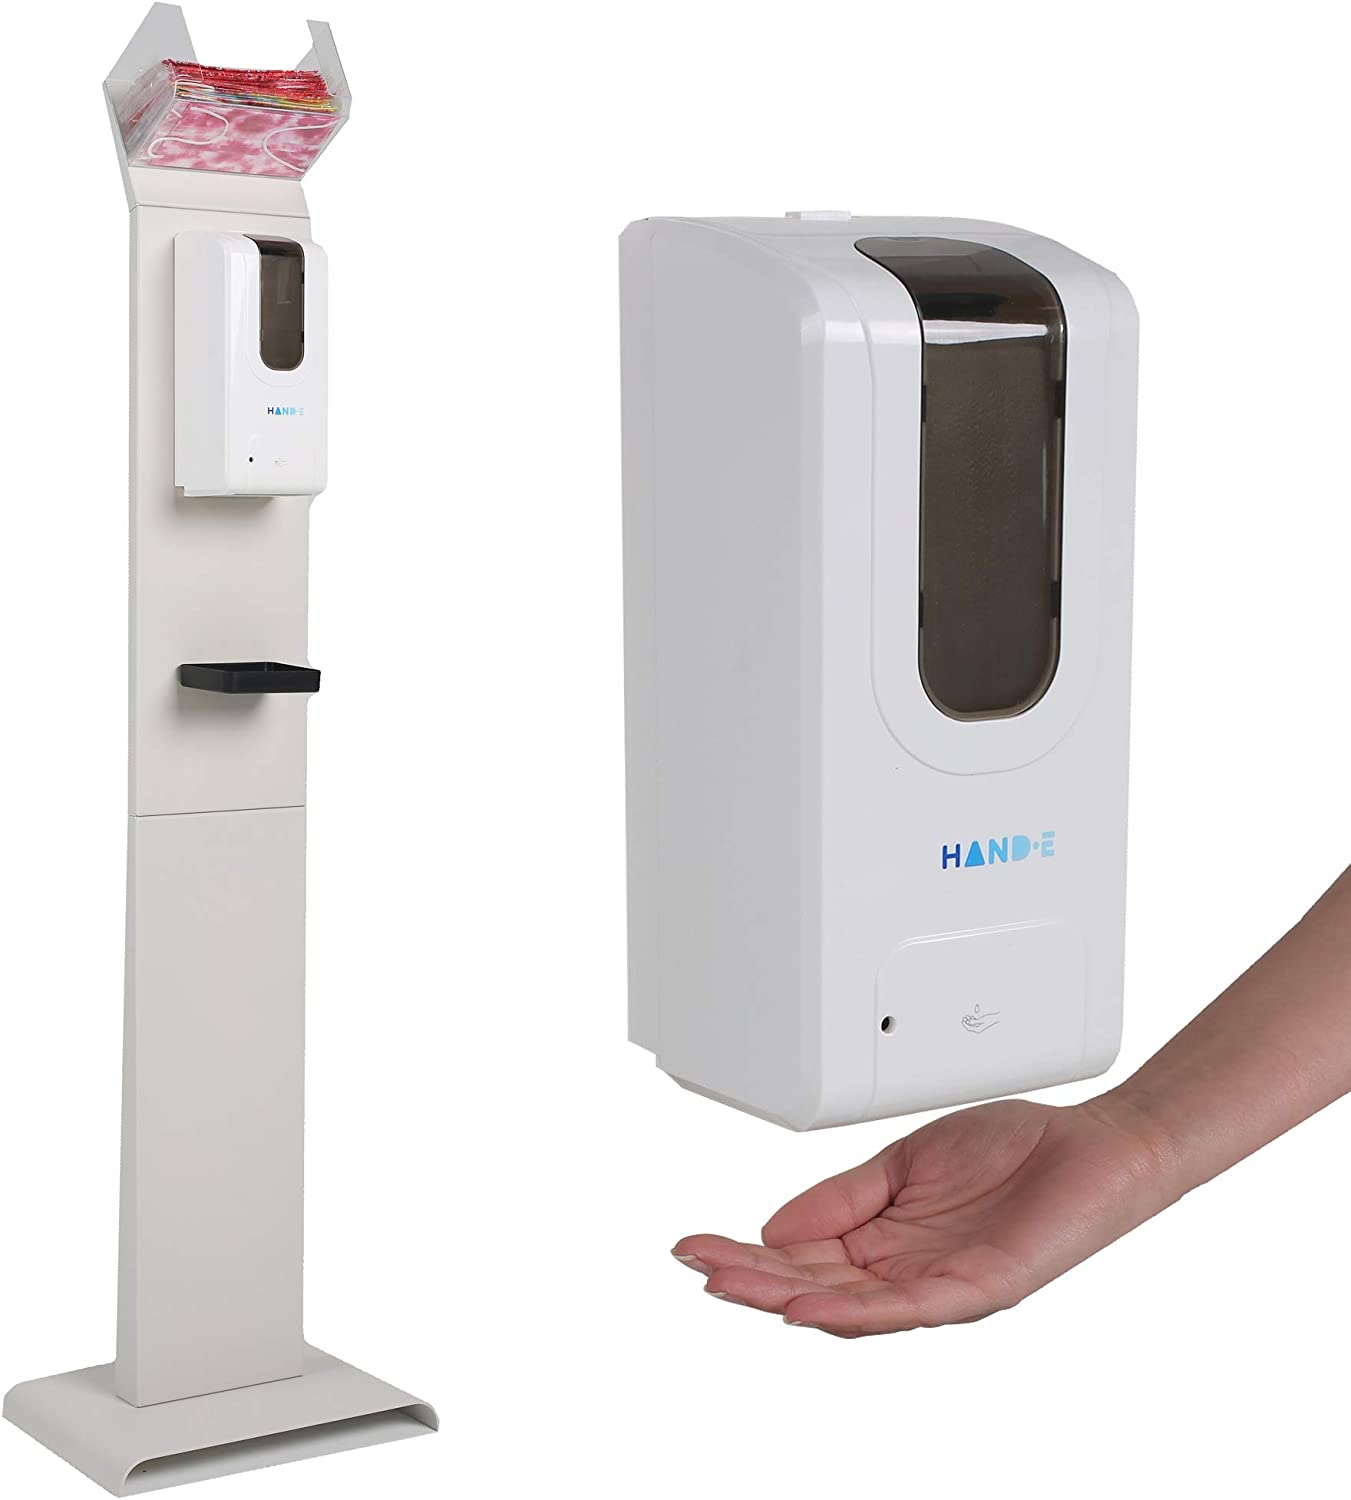 Automatic Hand Sanitizer Dispenser Stand with Face Mask Dispenser - Universal Touchless Hand Soap Dispenser - Liquid or Gel Hand Sanitizer Station - Wall Mounted or Stand - Drip Catcher Tray - White: Kitchen & Dining